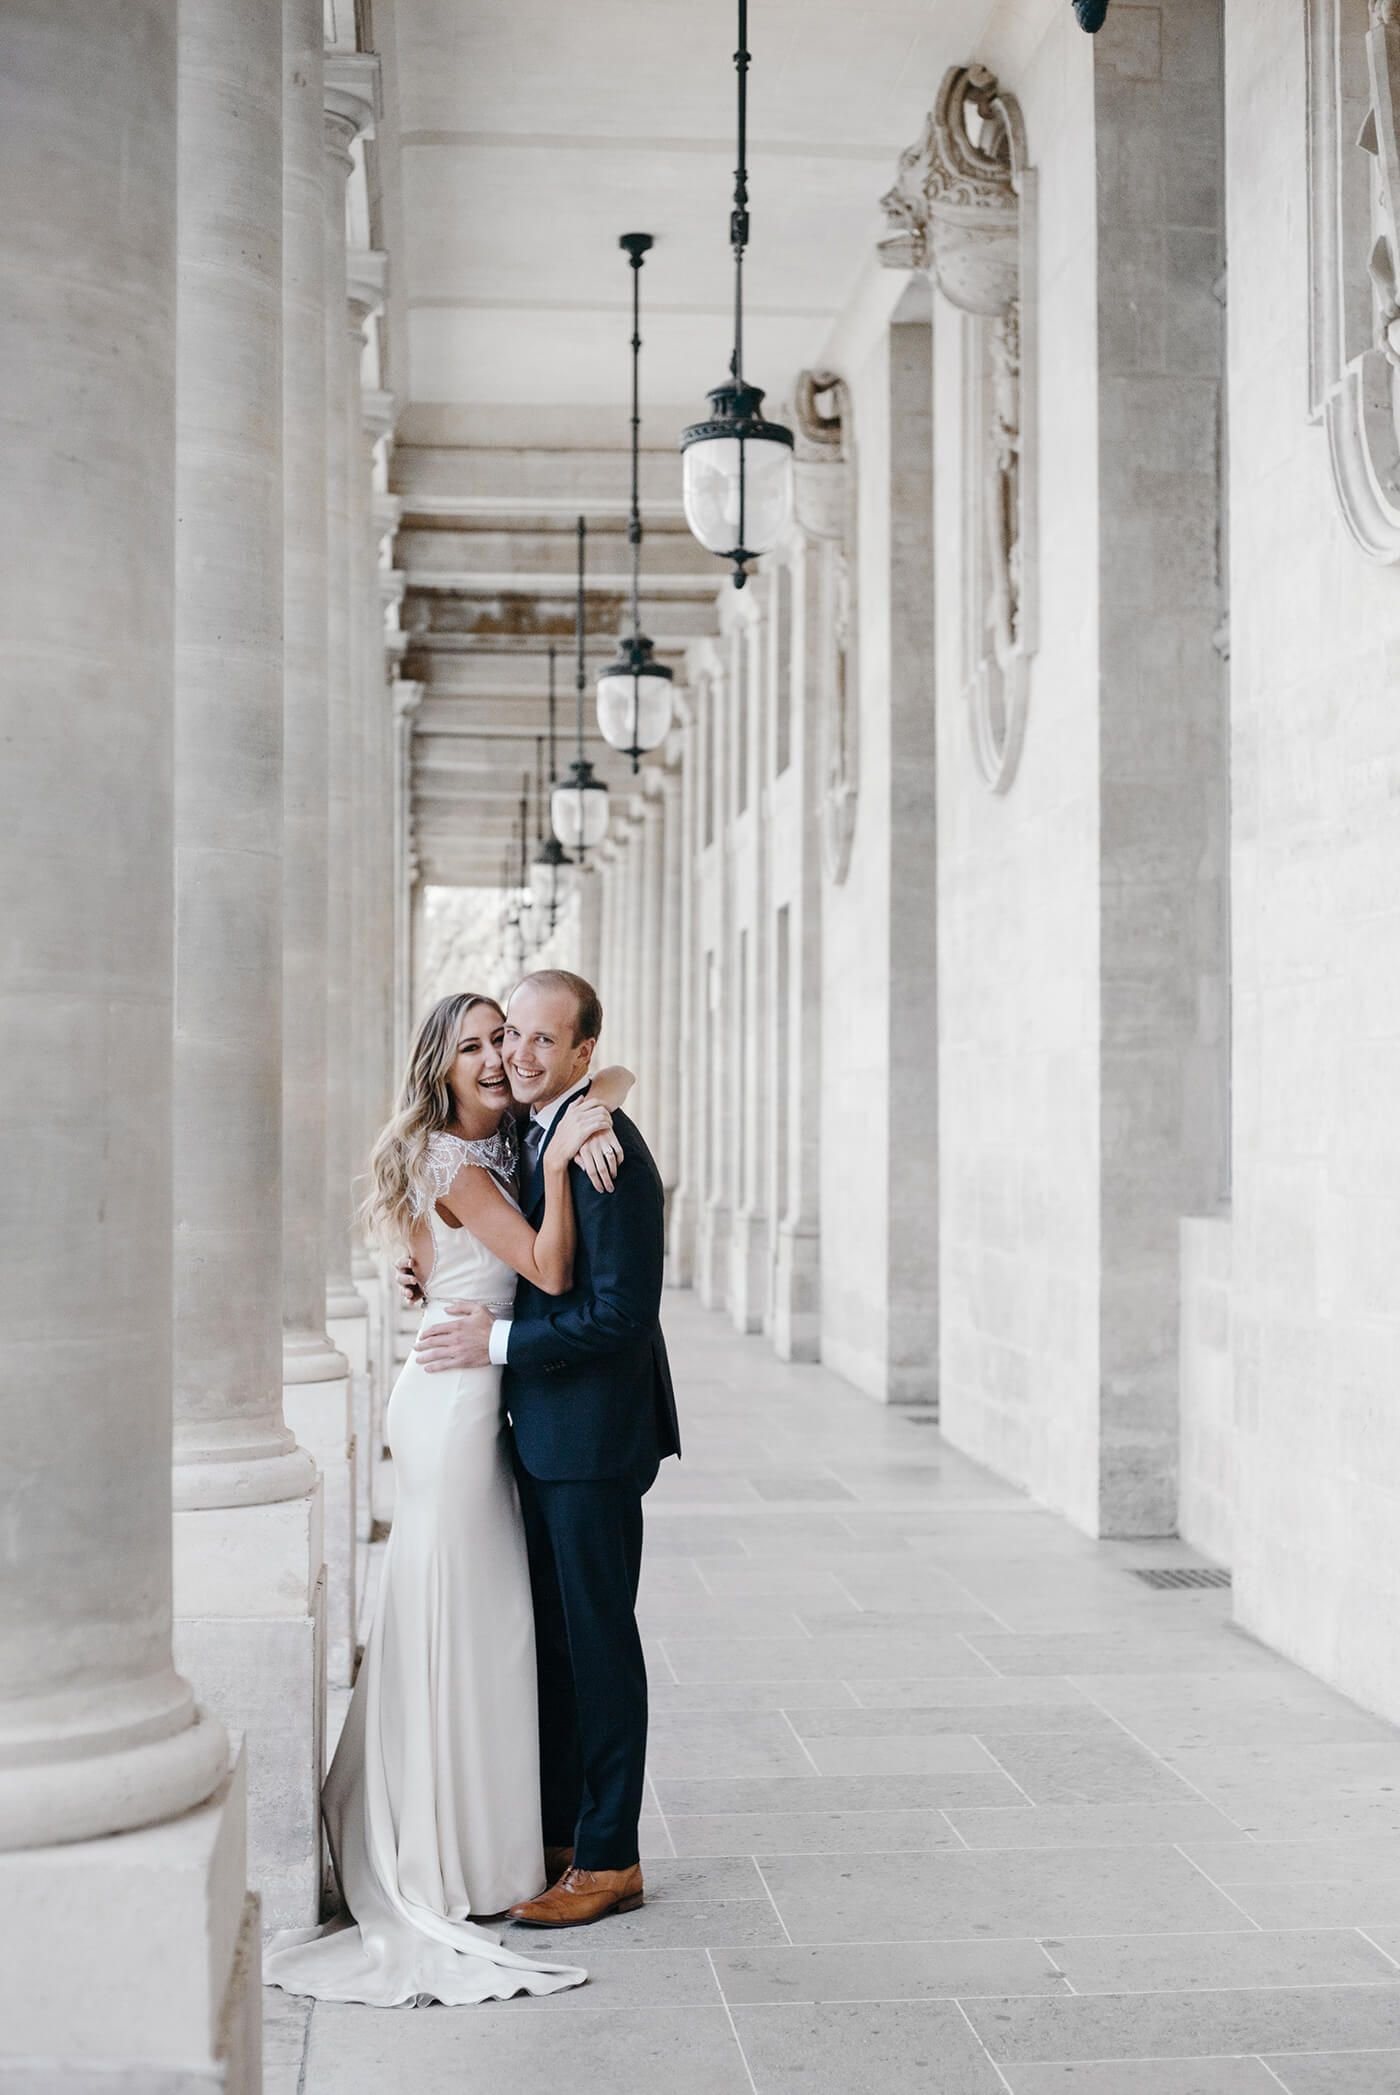 How To Save Money While Wedding Planning Carly Cristman